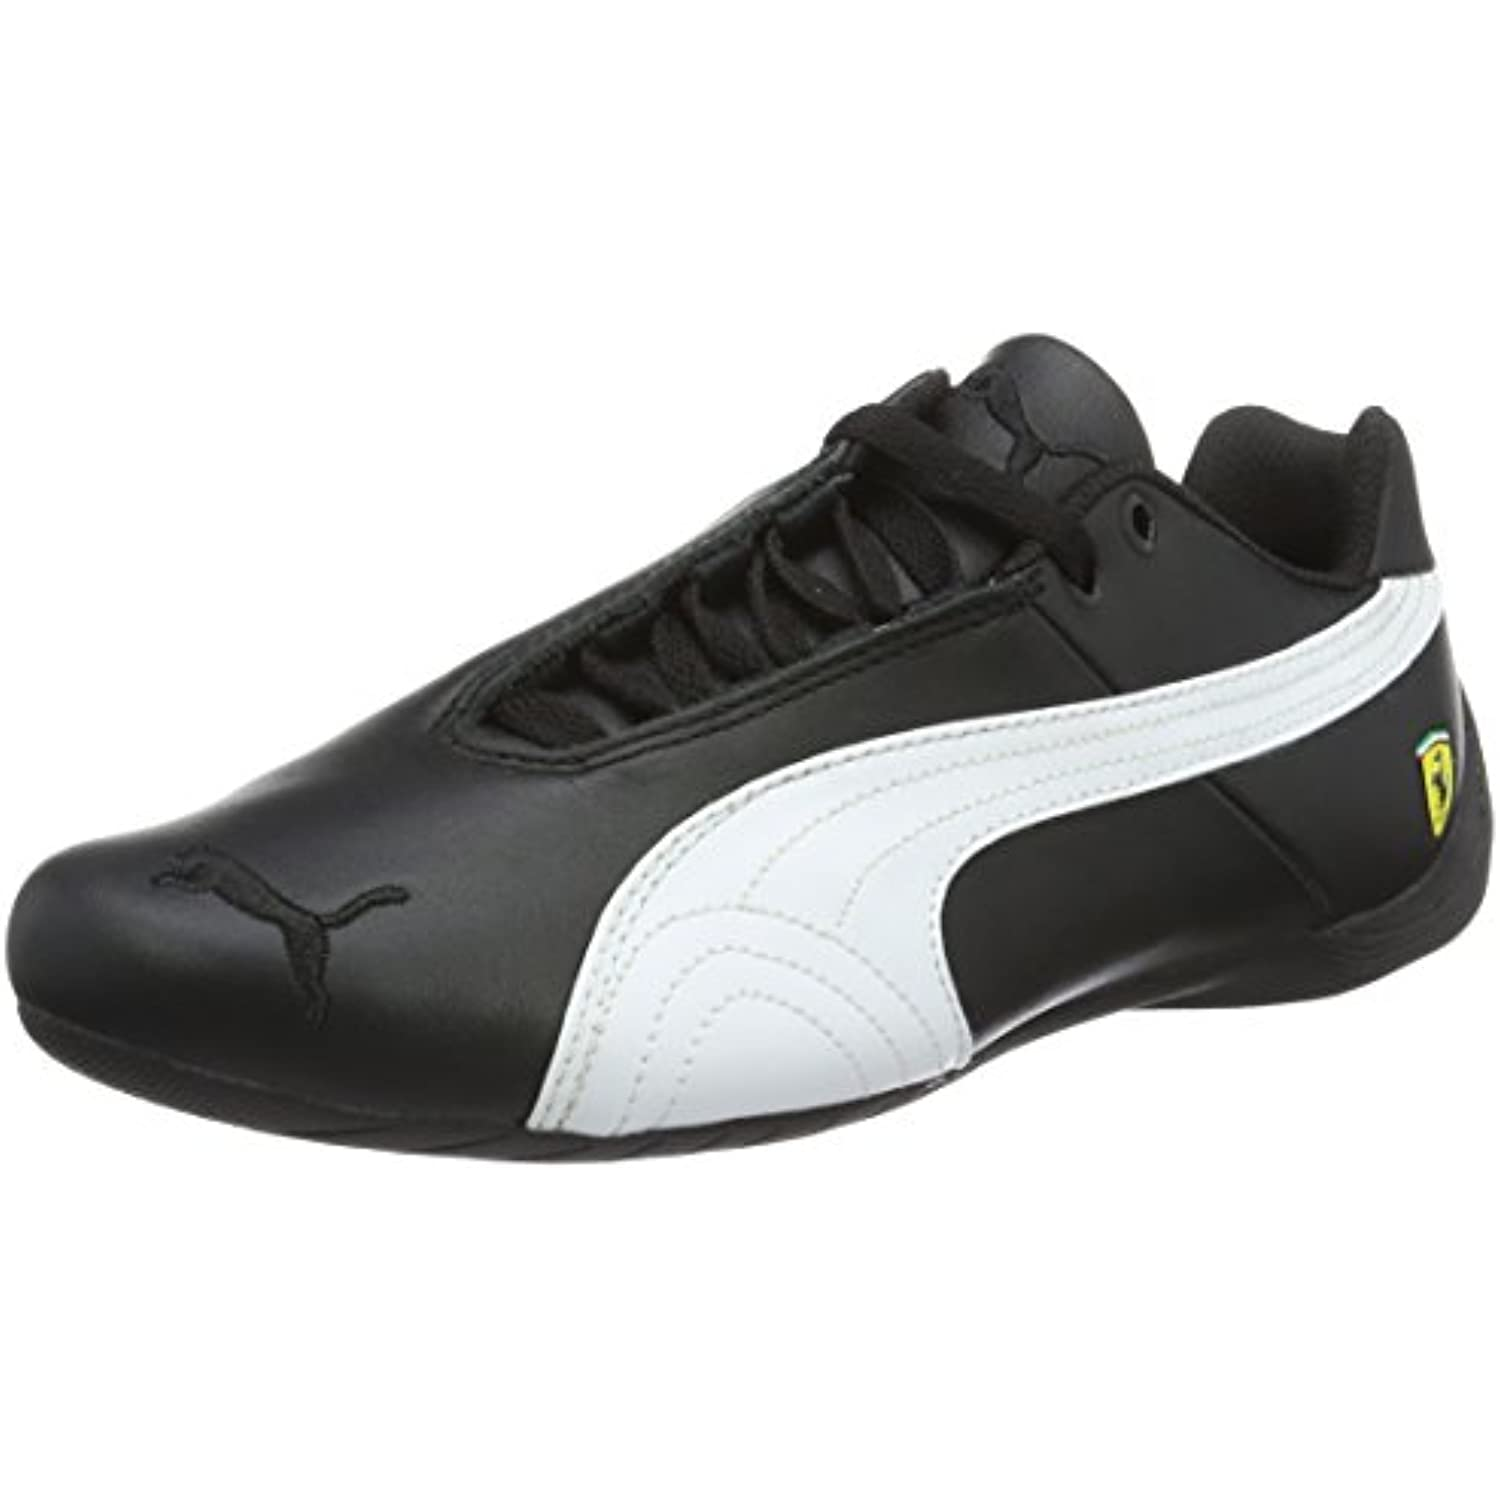 Puma Puma Puma SF Future Cat OG, Sneakers Basses Mixte Adulte - B01N3SBM3N - 692066